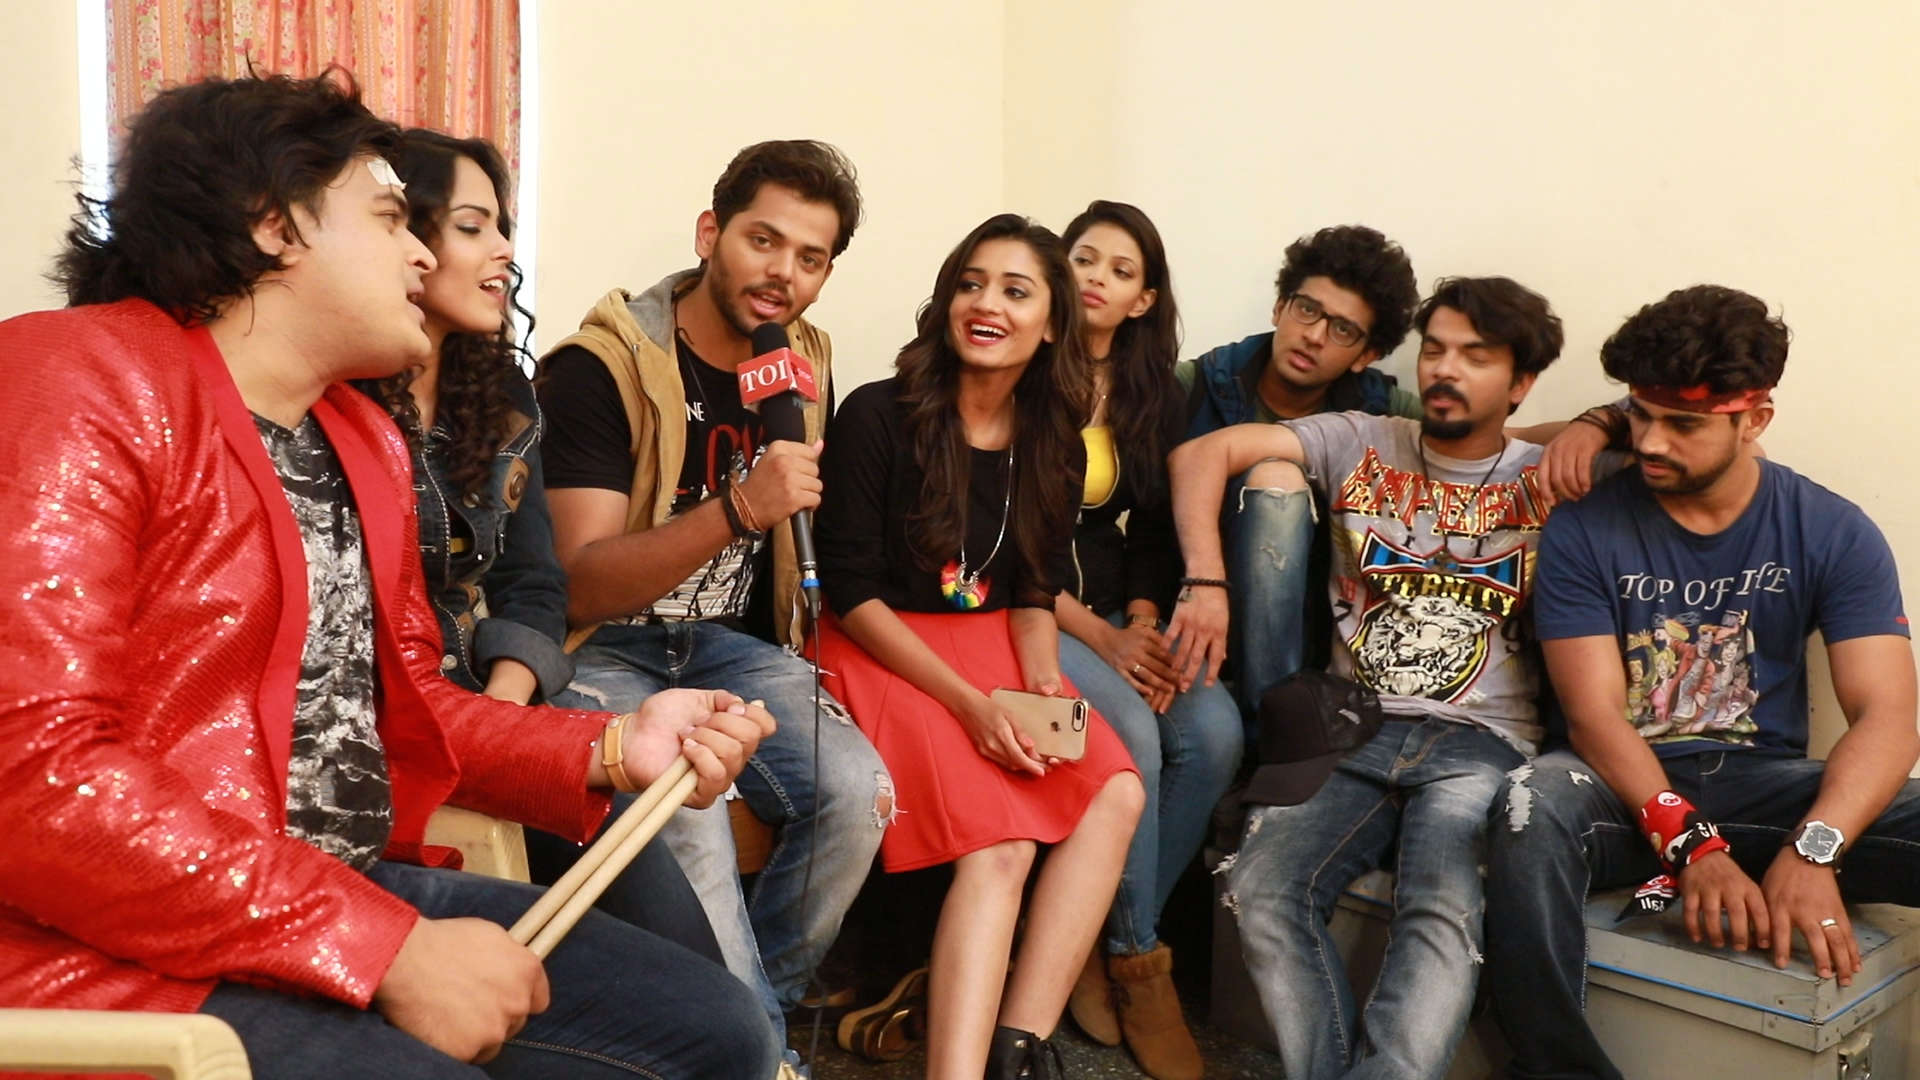 Phulpakharu gang sings a song for their fans